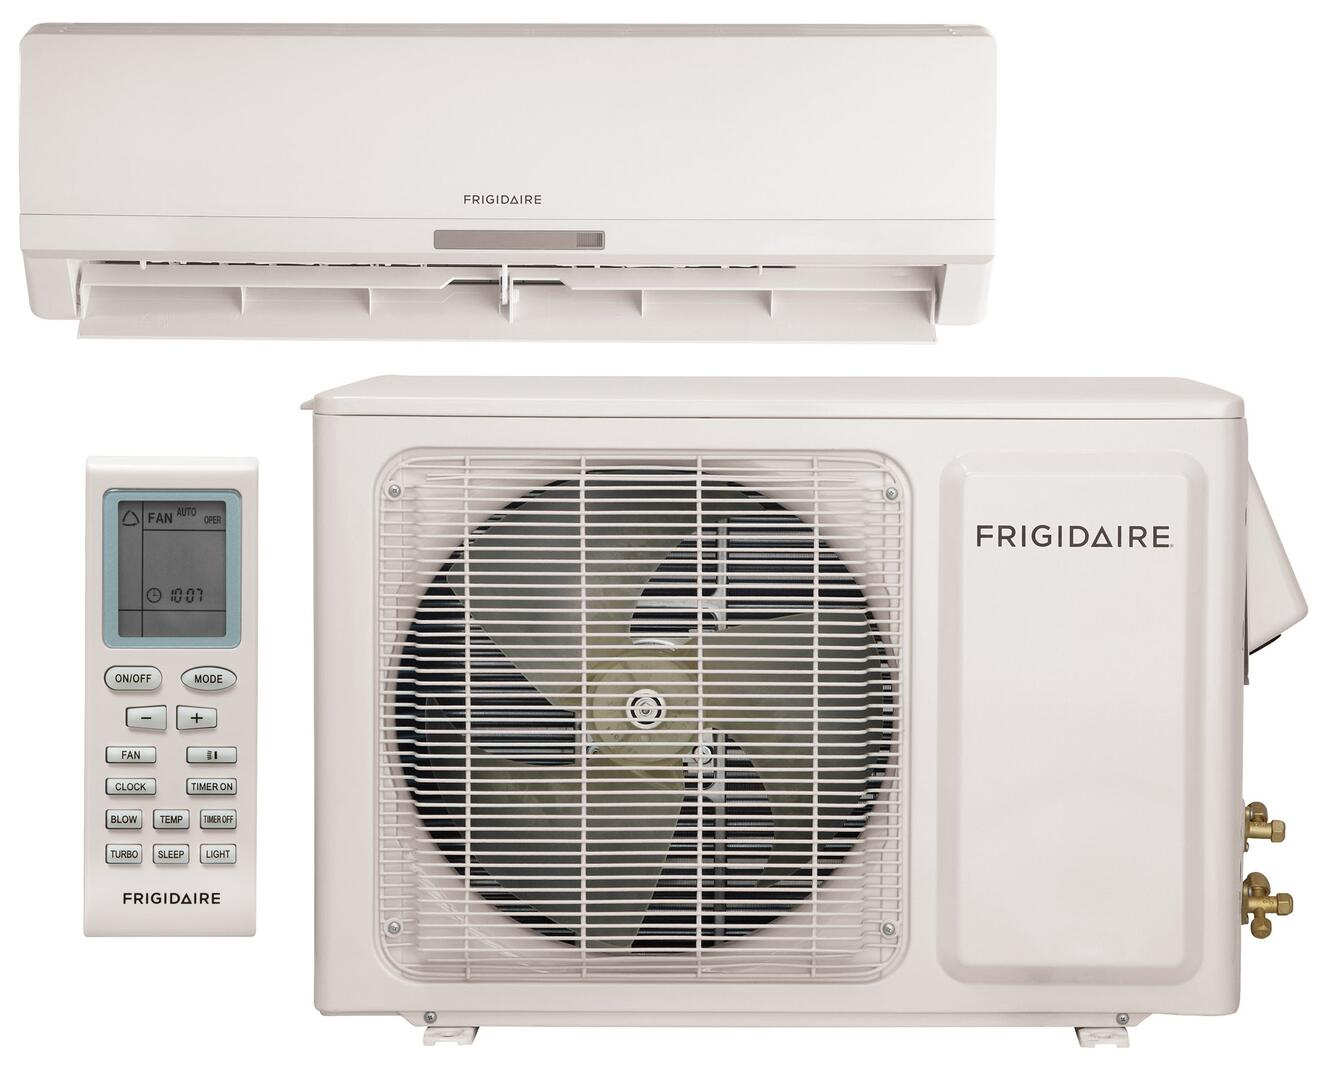 #566E75 Frigidaire FFHP122Q2 Mini Split Air Conditioner Cooling  Most Effective 7875 Air Conditioner Installation Manhattan pictures with 1333x1080 px on helpvideos.info - Air Conditioners, Air Coolers and more